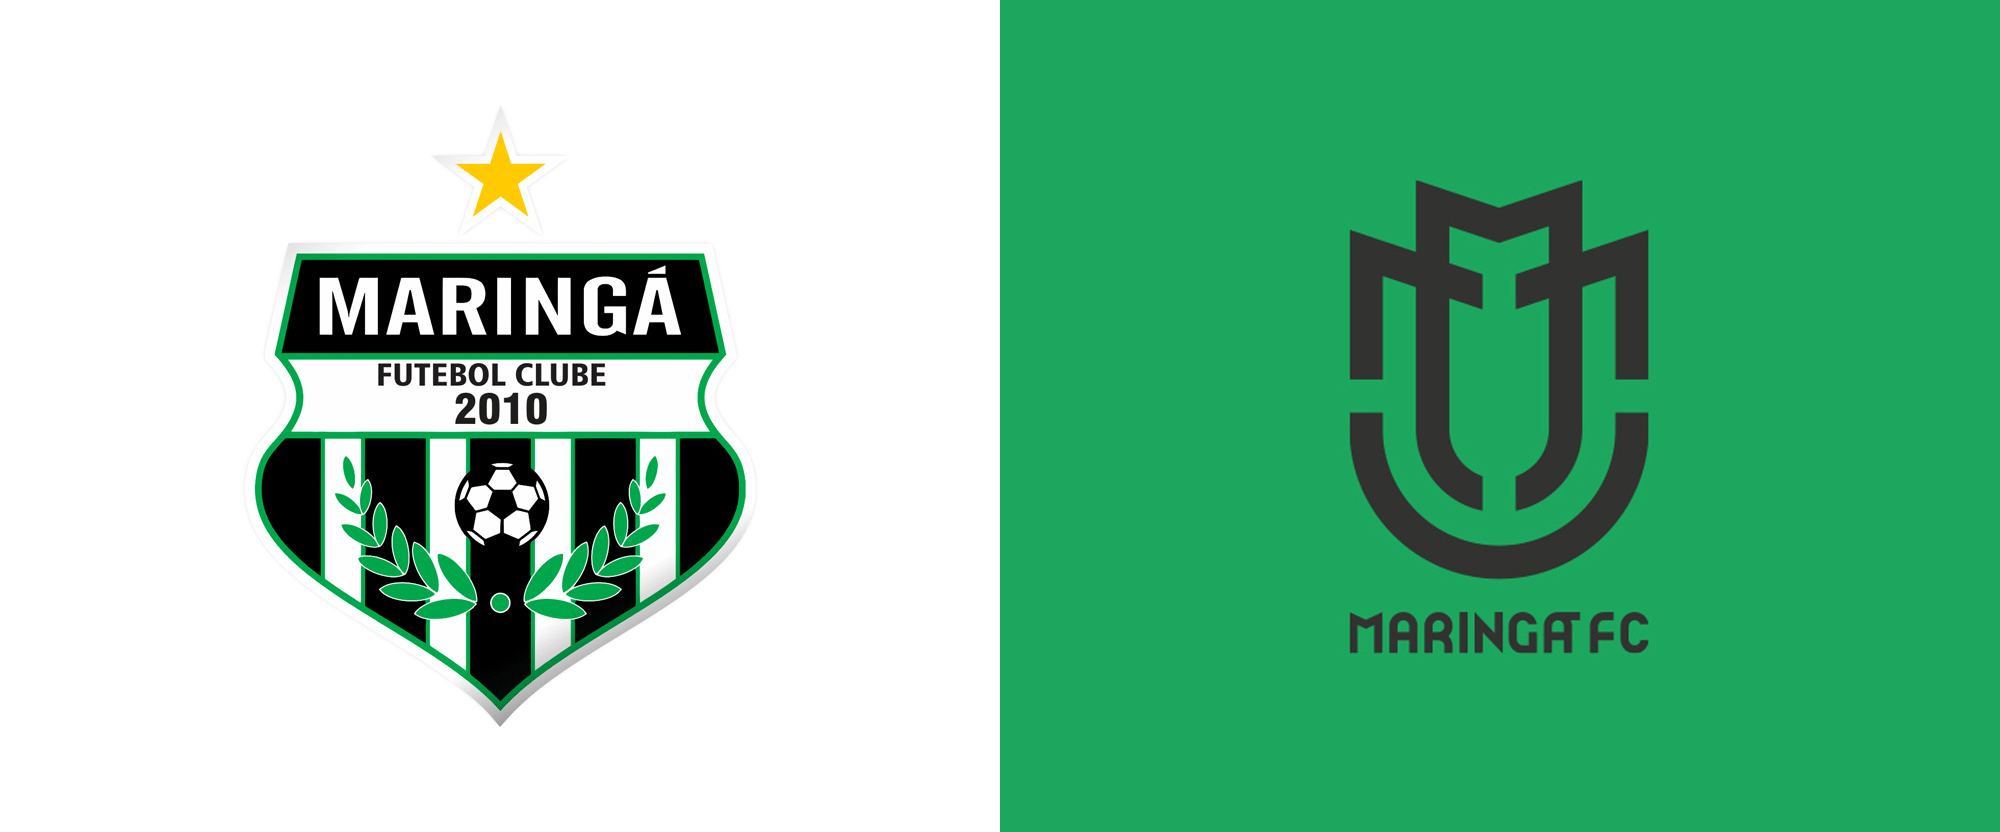 New Logo and Identity for Maringá Futebol Clube by Brandigno